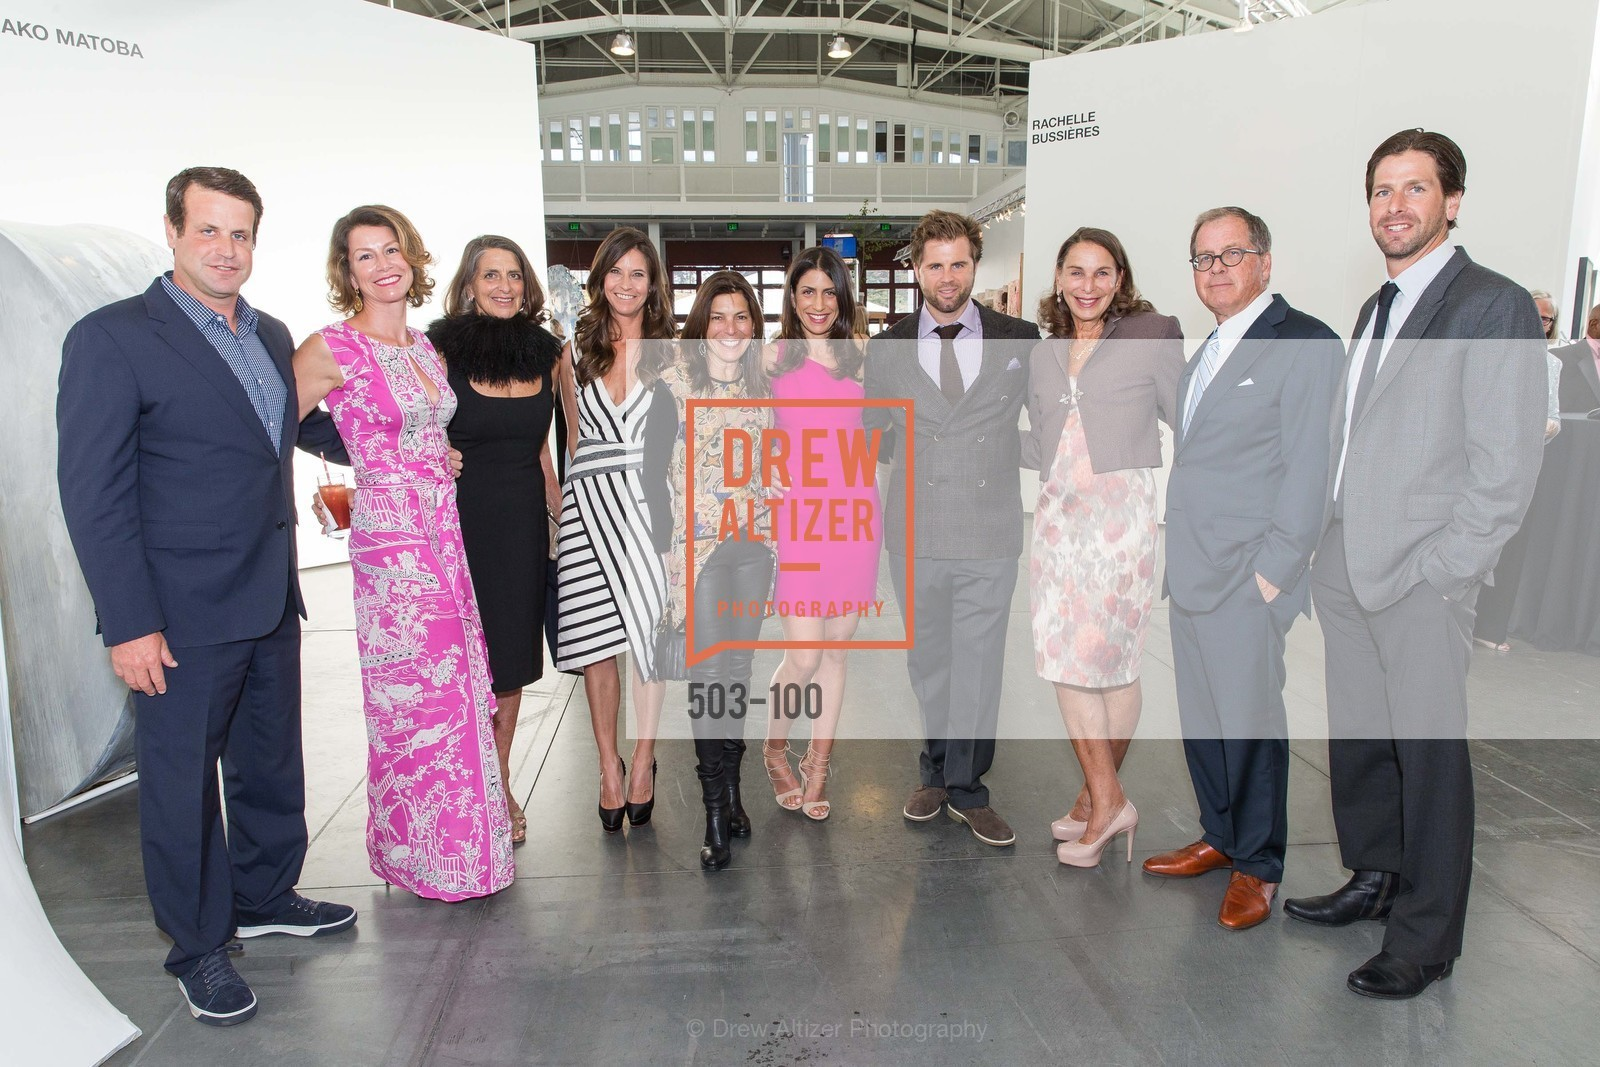 Nick Heldfond, Simone LaCorte, Sari Swig, Susan Swig, Liza Cannata, Joey Cannata, Gala Vernissage & Varnished The After Party Presented by SFAI, Fort Mason. Pier 2, May 14th, 2015,Drew Altizer, Drew Altizer Photography, full-service event agency, private events, San Francisco photographer, photographer California